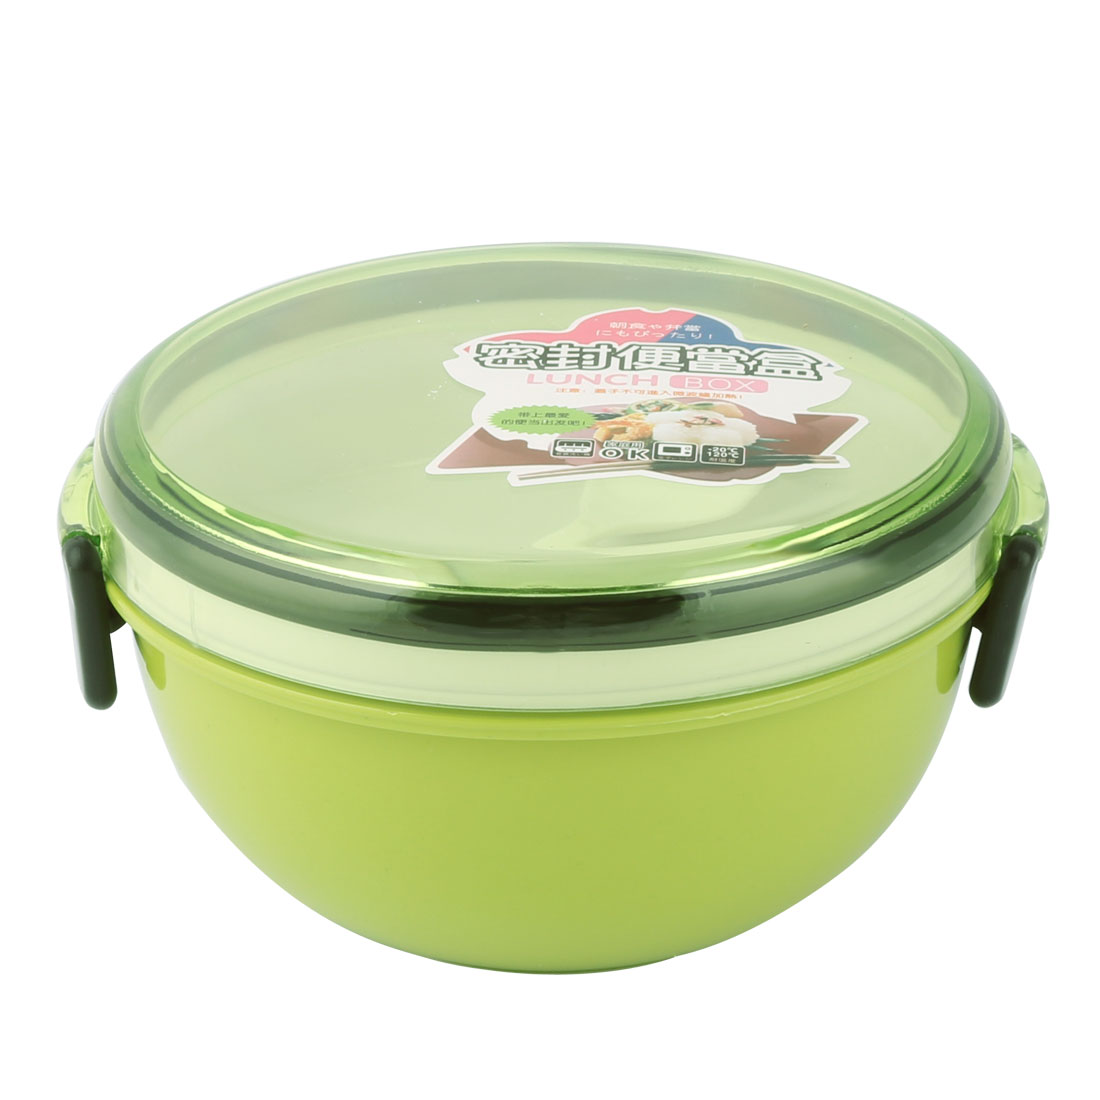 Unique Bargains Home Office Plastic Round Shaped Lunch Box Food Storage Container Green  sc 1 st  Walmart Canada & Unique Bargains Home Office Plastic Round Shaped Lunch Box Food ...